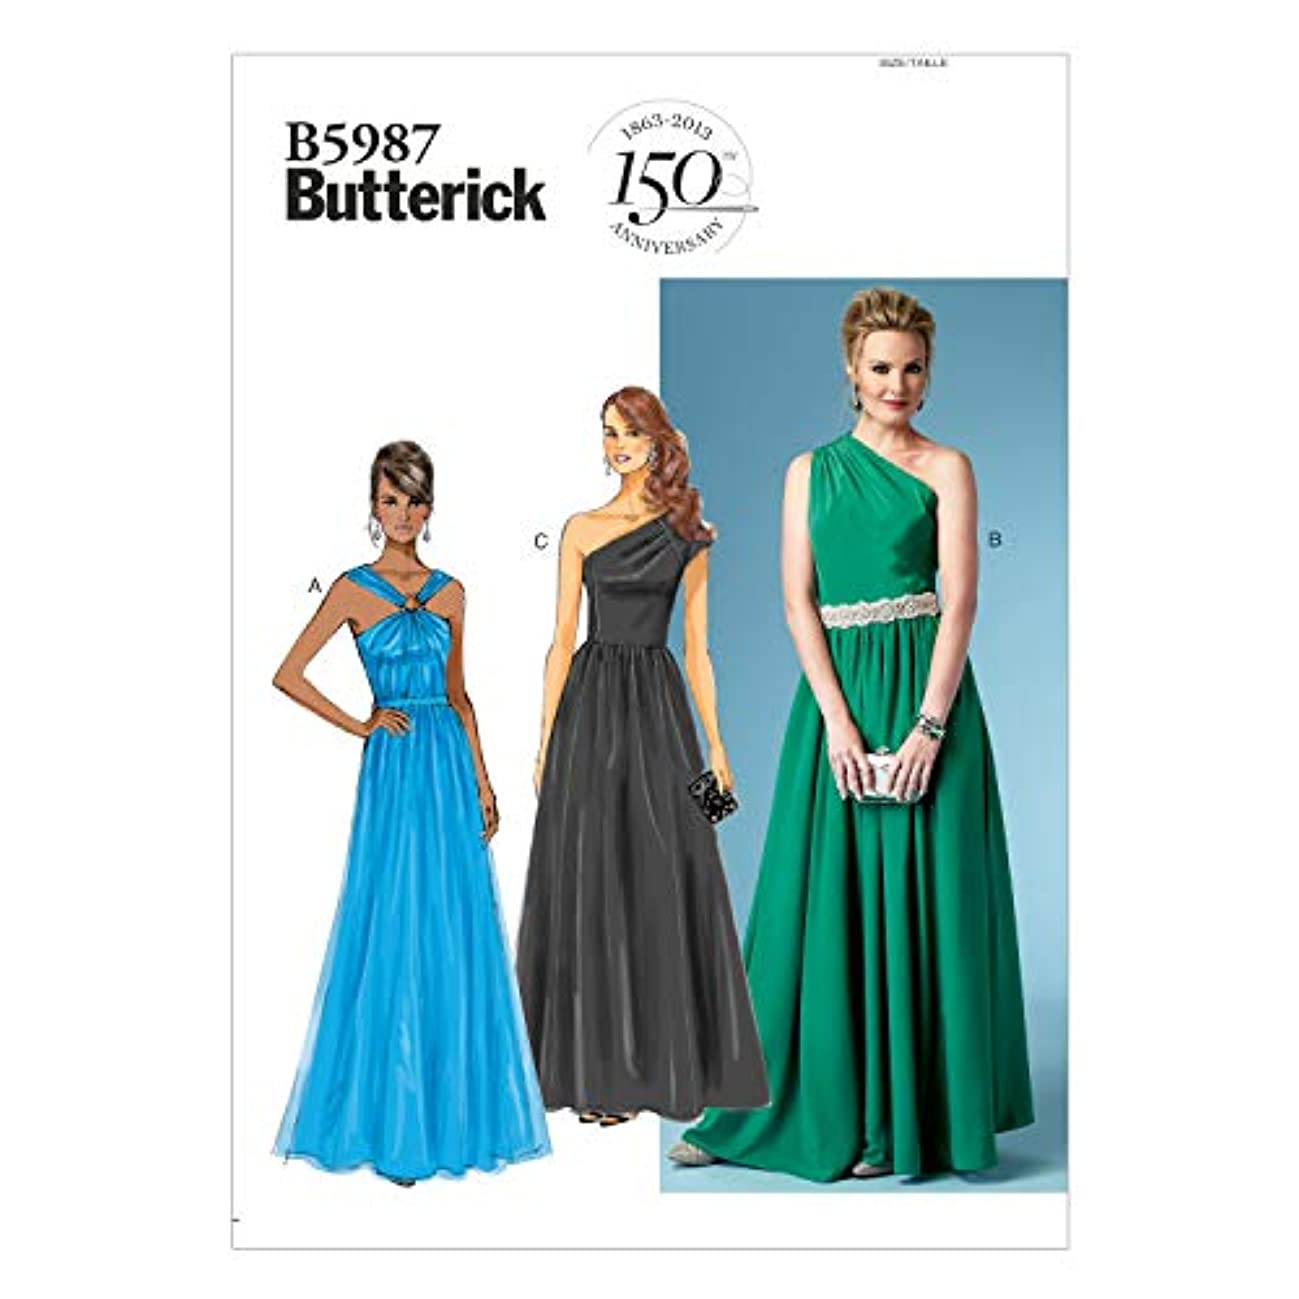 BUTTERICK PATTERNS B5987 Misses' Dress Sewing Template, Size B5